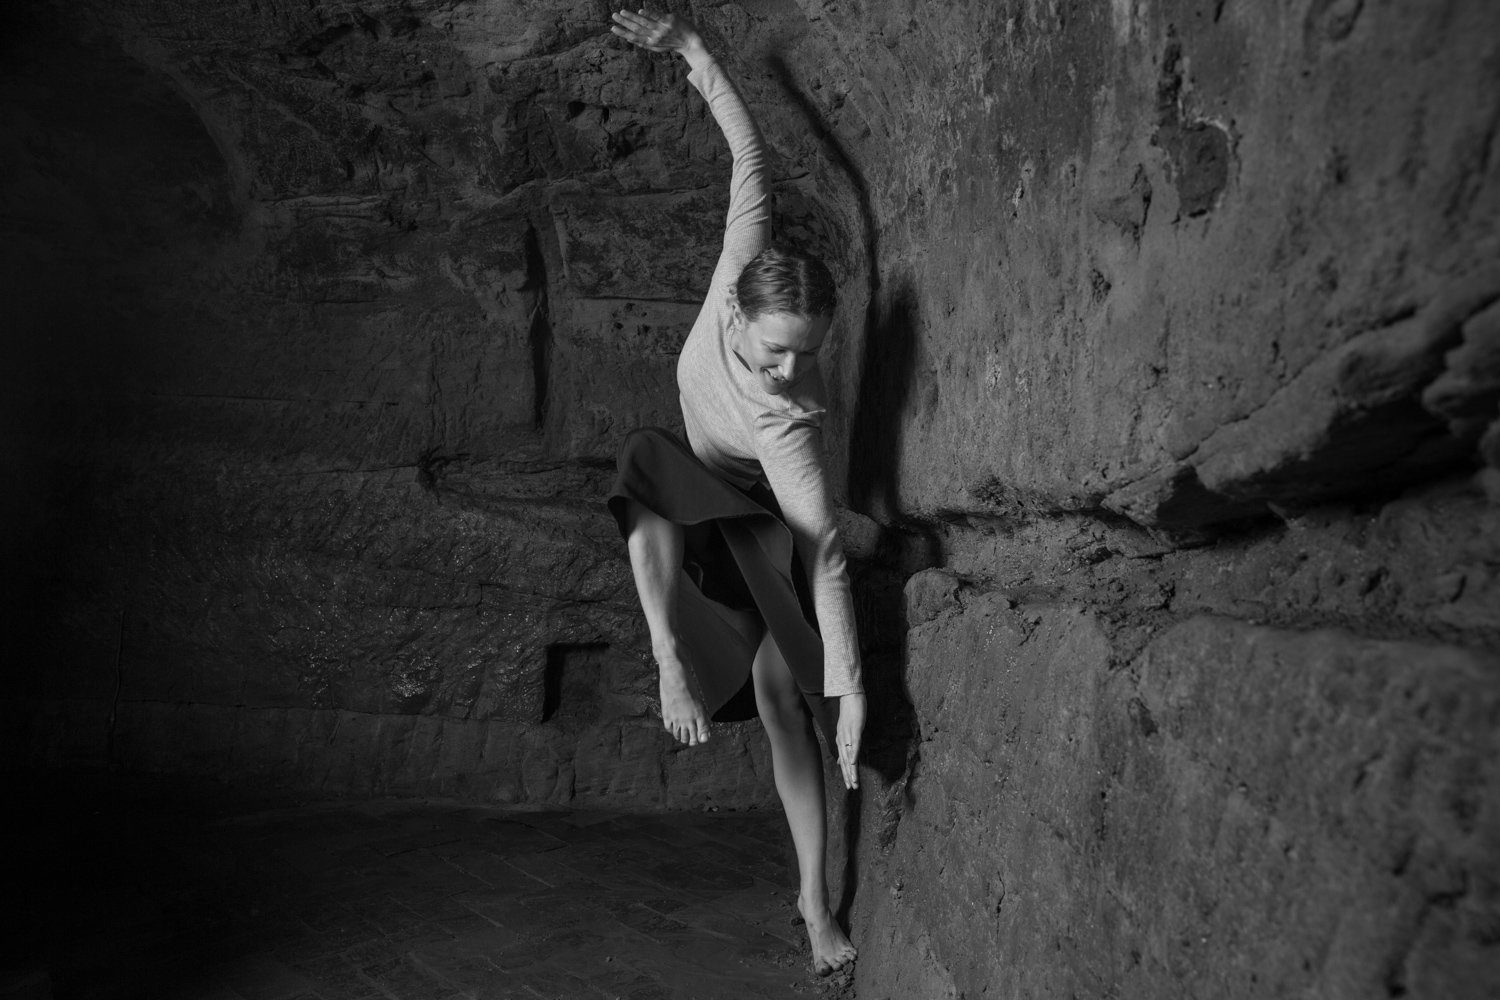 Black and white picture of Amy Harris dancing in the caves of the Maltcross in Nottingham